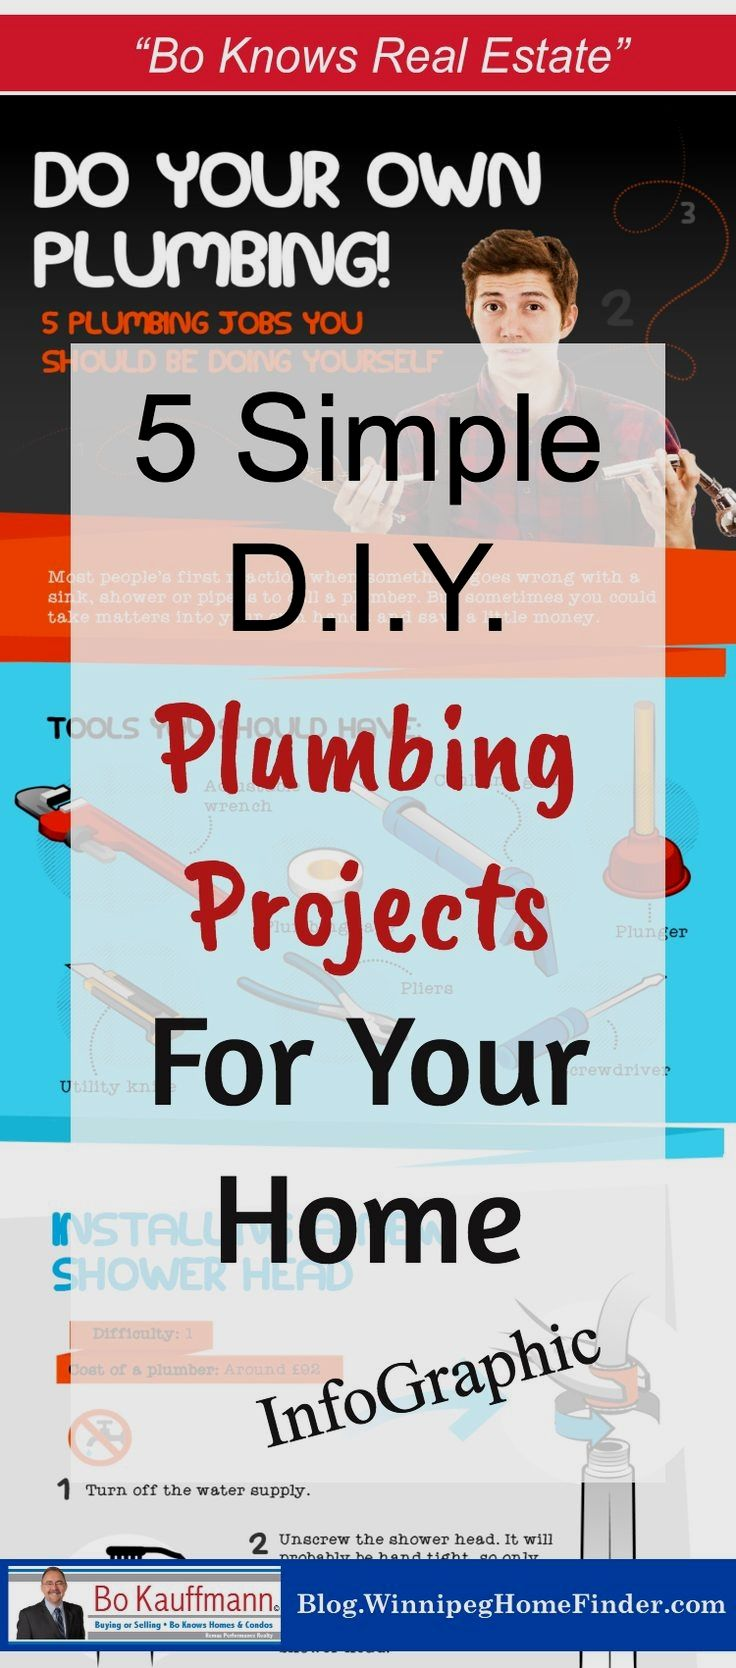 5 simple plumbing projects you can do yourself homeowner plumbing 5 simple plumbing projects you can do yourself homeowner plumbing projects diy infographic 5 solutioingenieria Choice Image